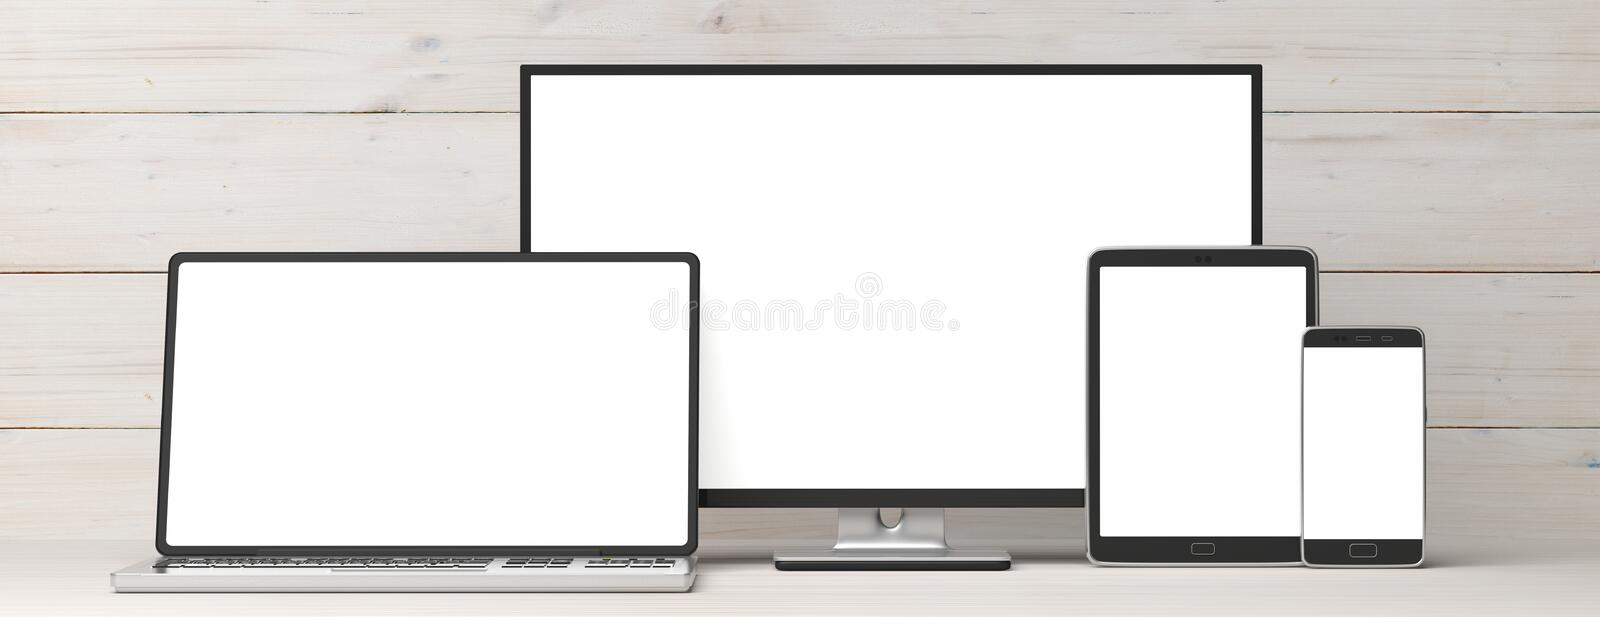 Set of realistic blank monitors. Computer monitor, laptop, tablet and smartphone on wooden background, copy space. 3d illustration royalty free illustration